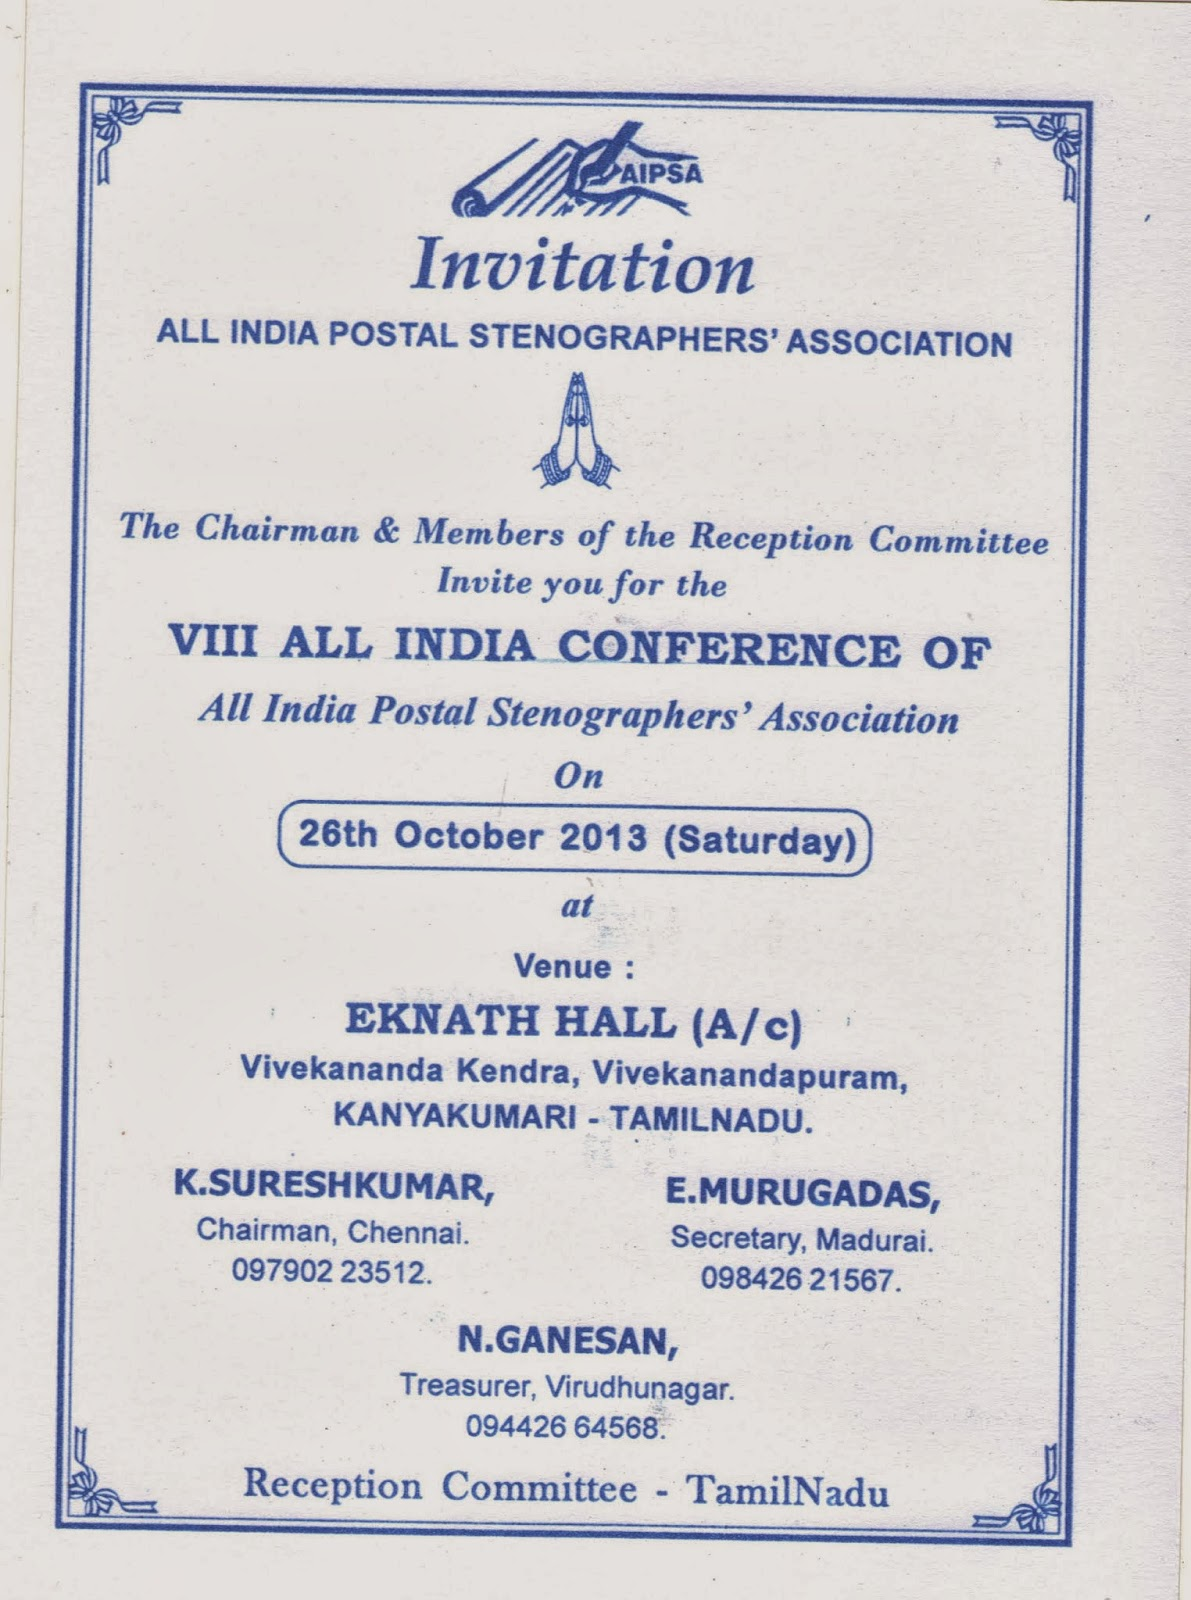 Tamil nadu circle postal stenographers association invitation of invitation of kanyakumari all india conference of aipsa stopboris Images